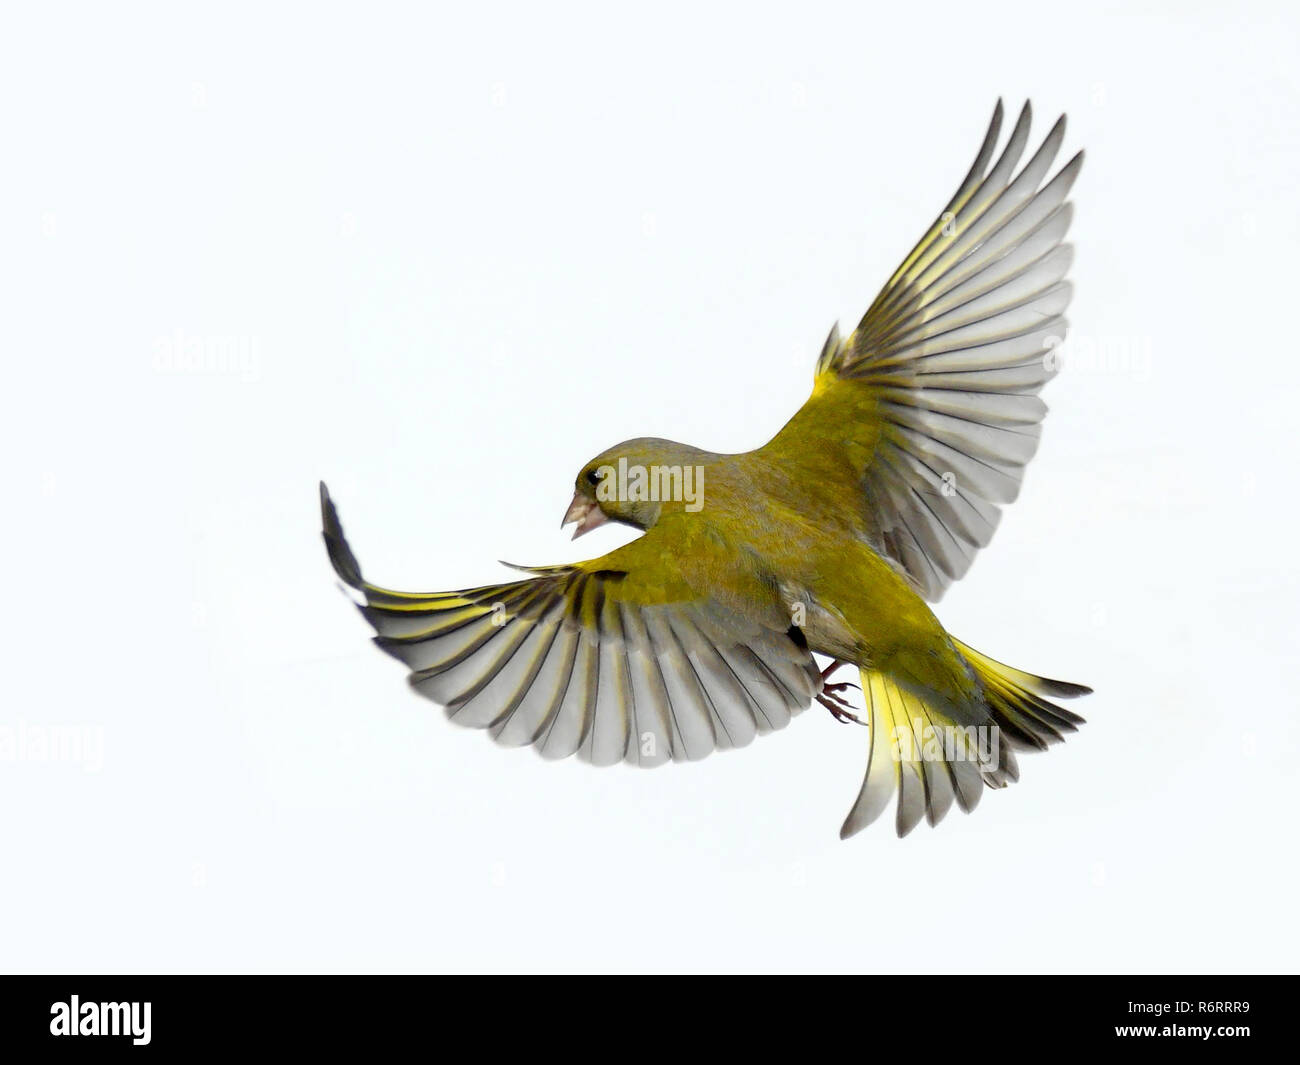 a greenfinch in free flight - Stock Image